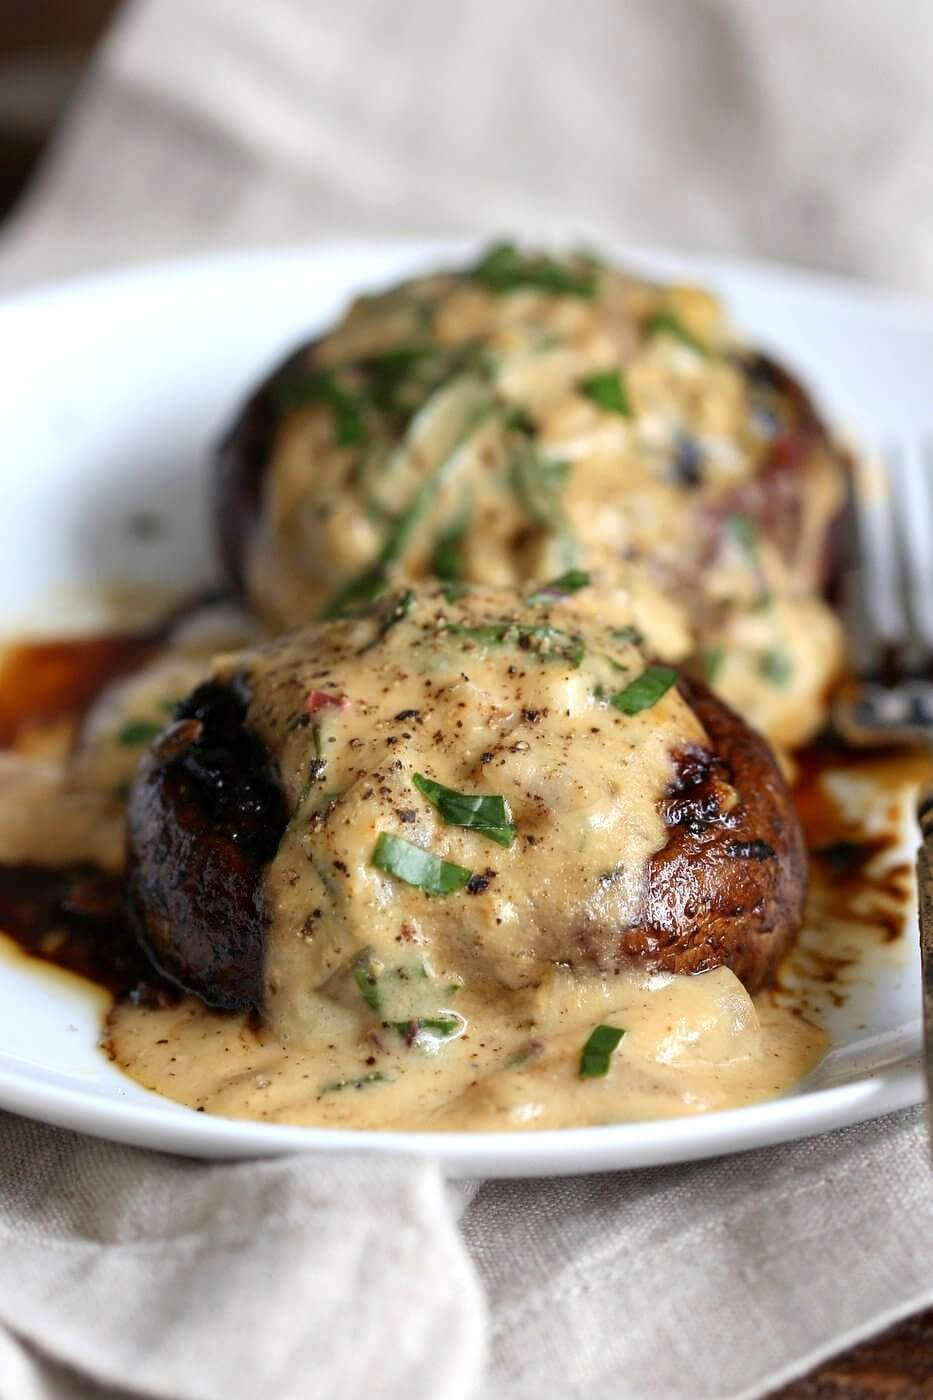 15 Grilled Portobello Mushrooms with Garlic Sauce